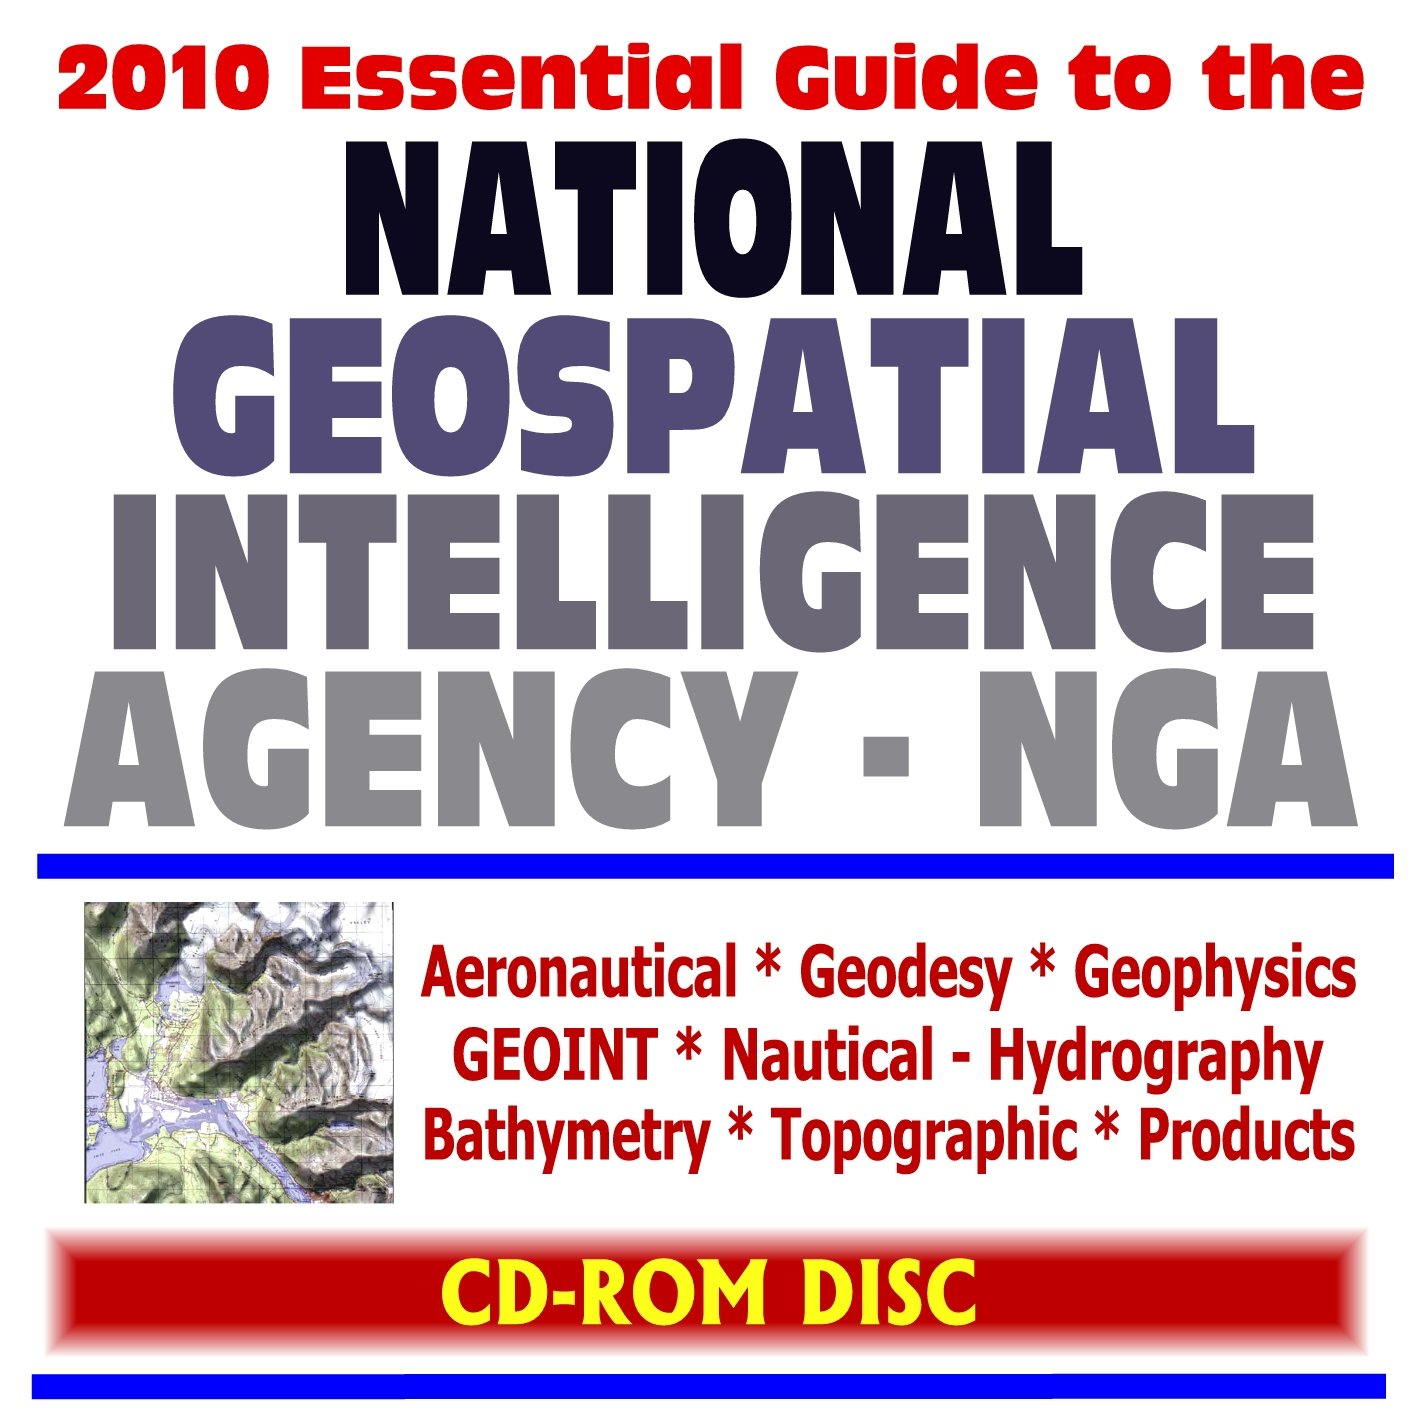 2010 Essential Guide to the National Geospatial Intelligence Agency (NGA) - Aeronautical, Geodesy, Geophysics, GEOINT, Nautical, Hydrography, Bathymetry, Topographic Products (CD-ROM) PDF